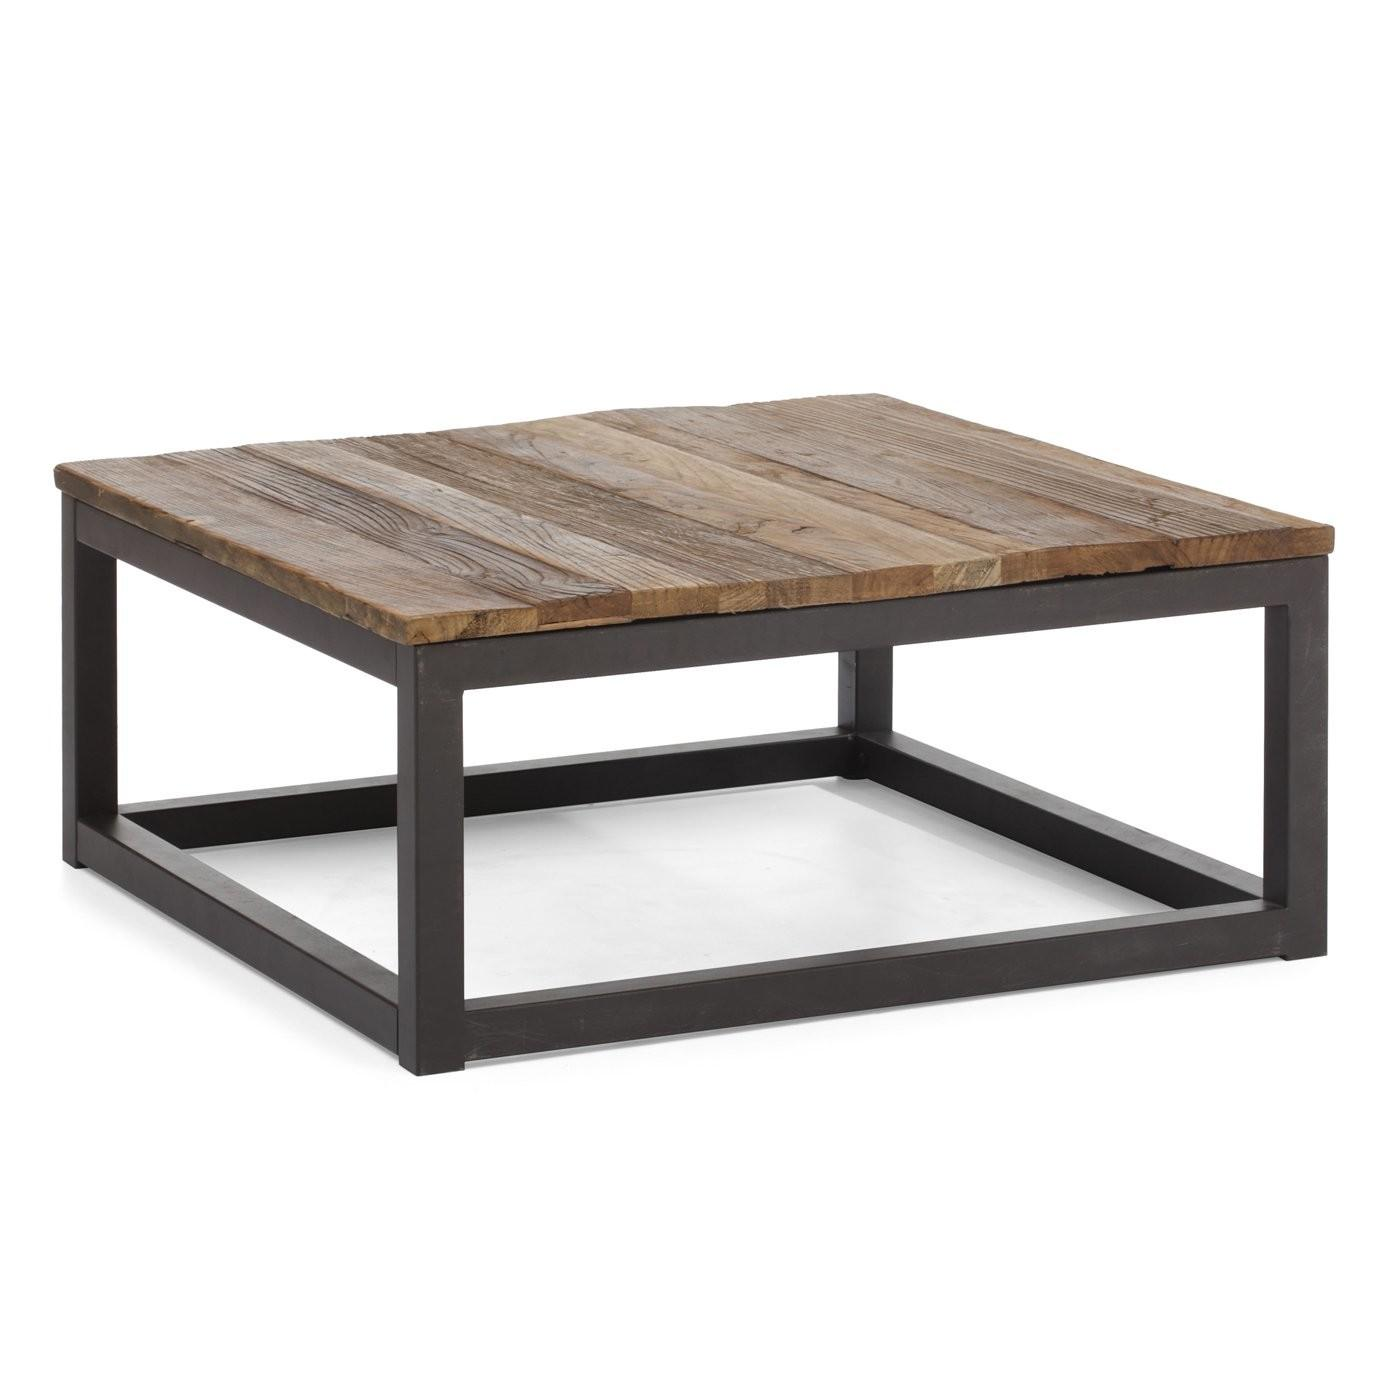 Zuo Modern Civic Center Square Coffee Table Lowe